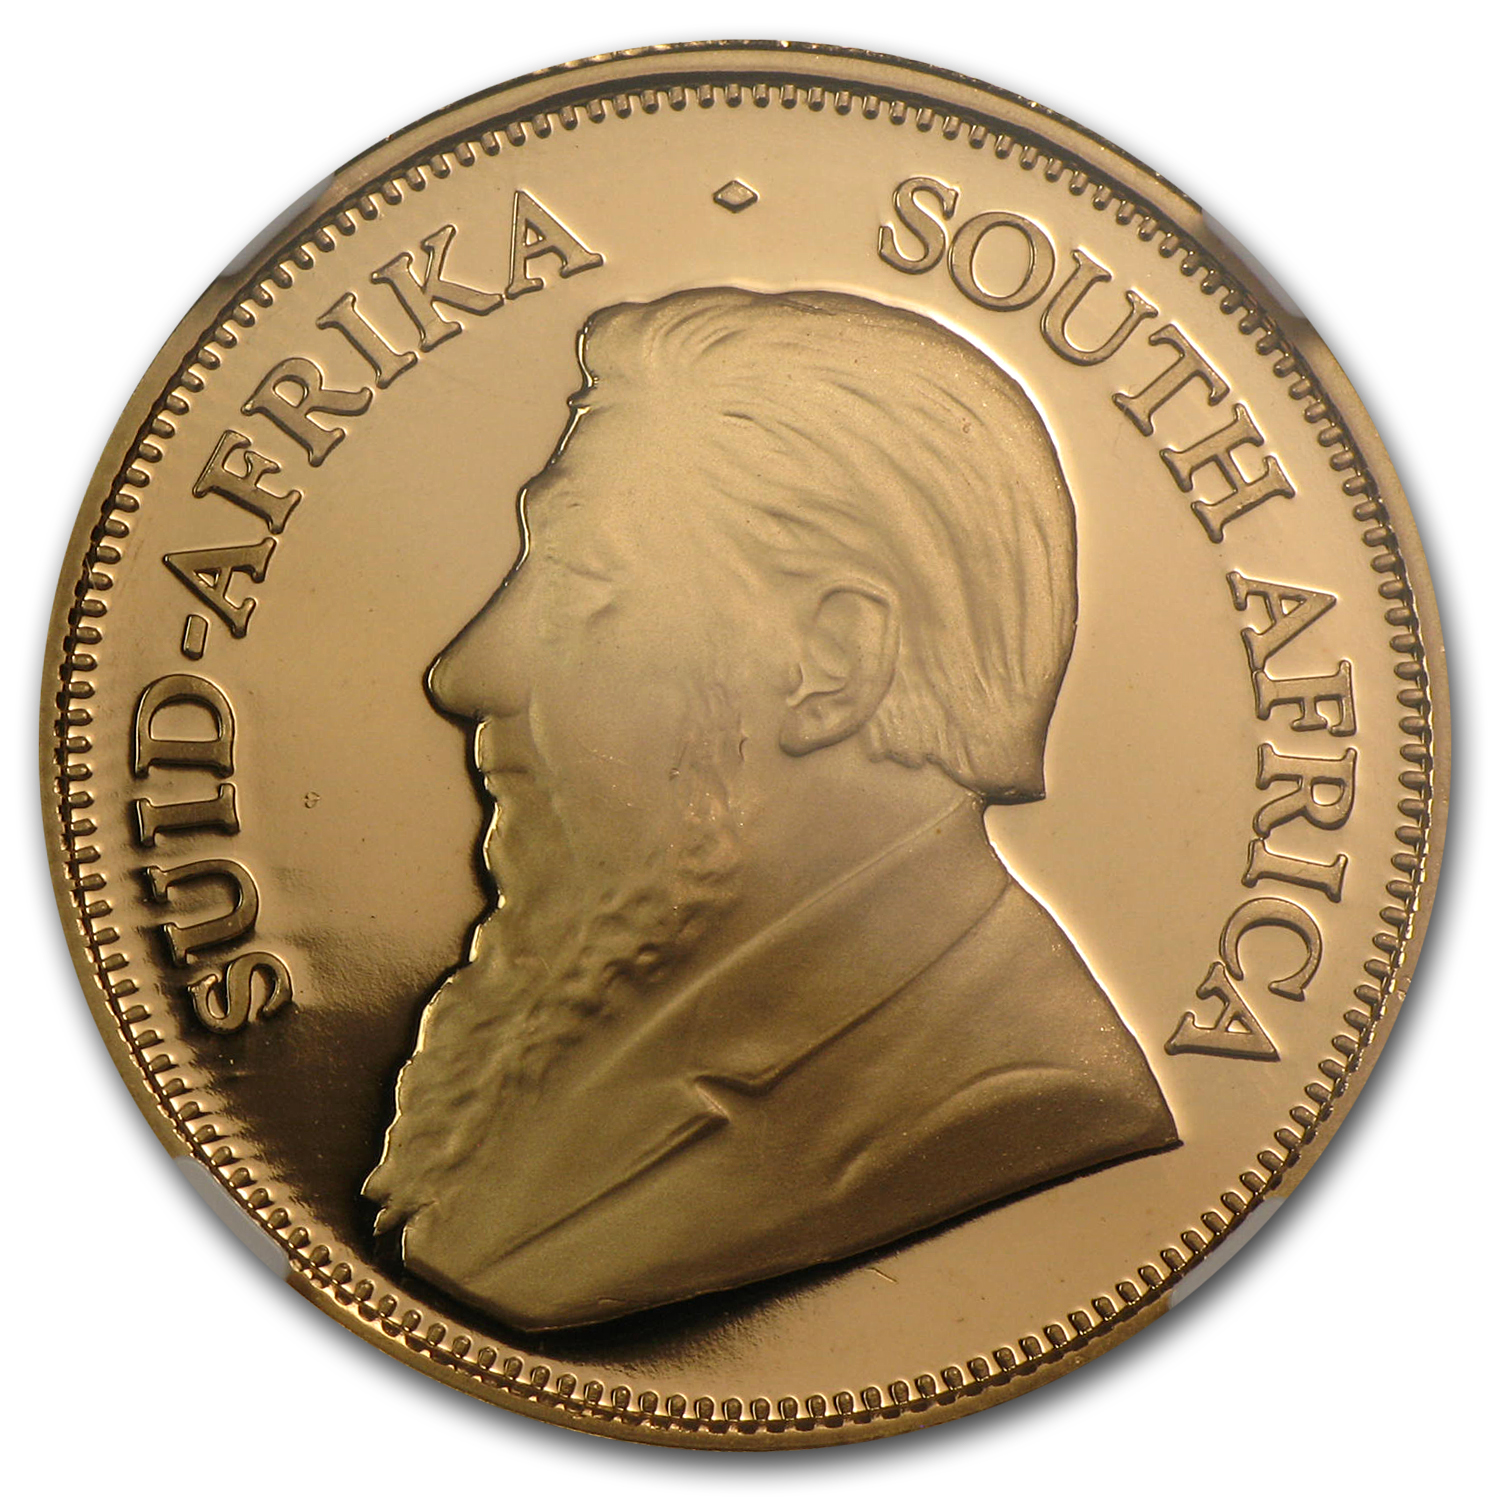 2000 1/2 oz Gold South African Krugerrand PF-69 NGC